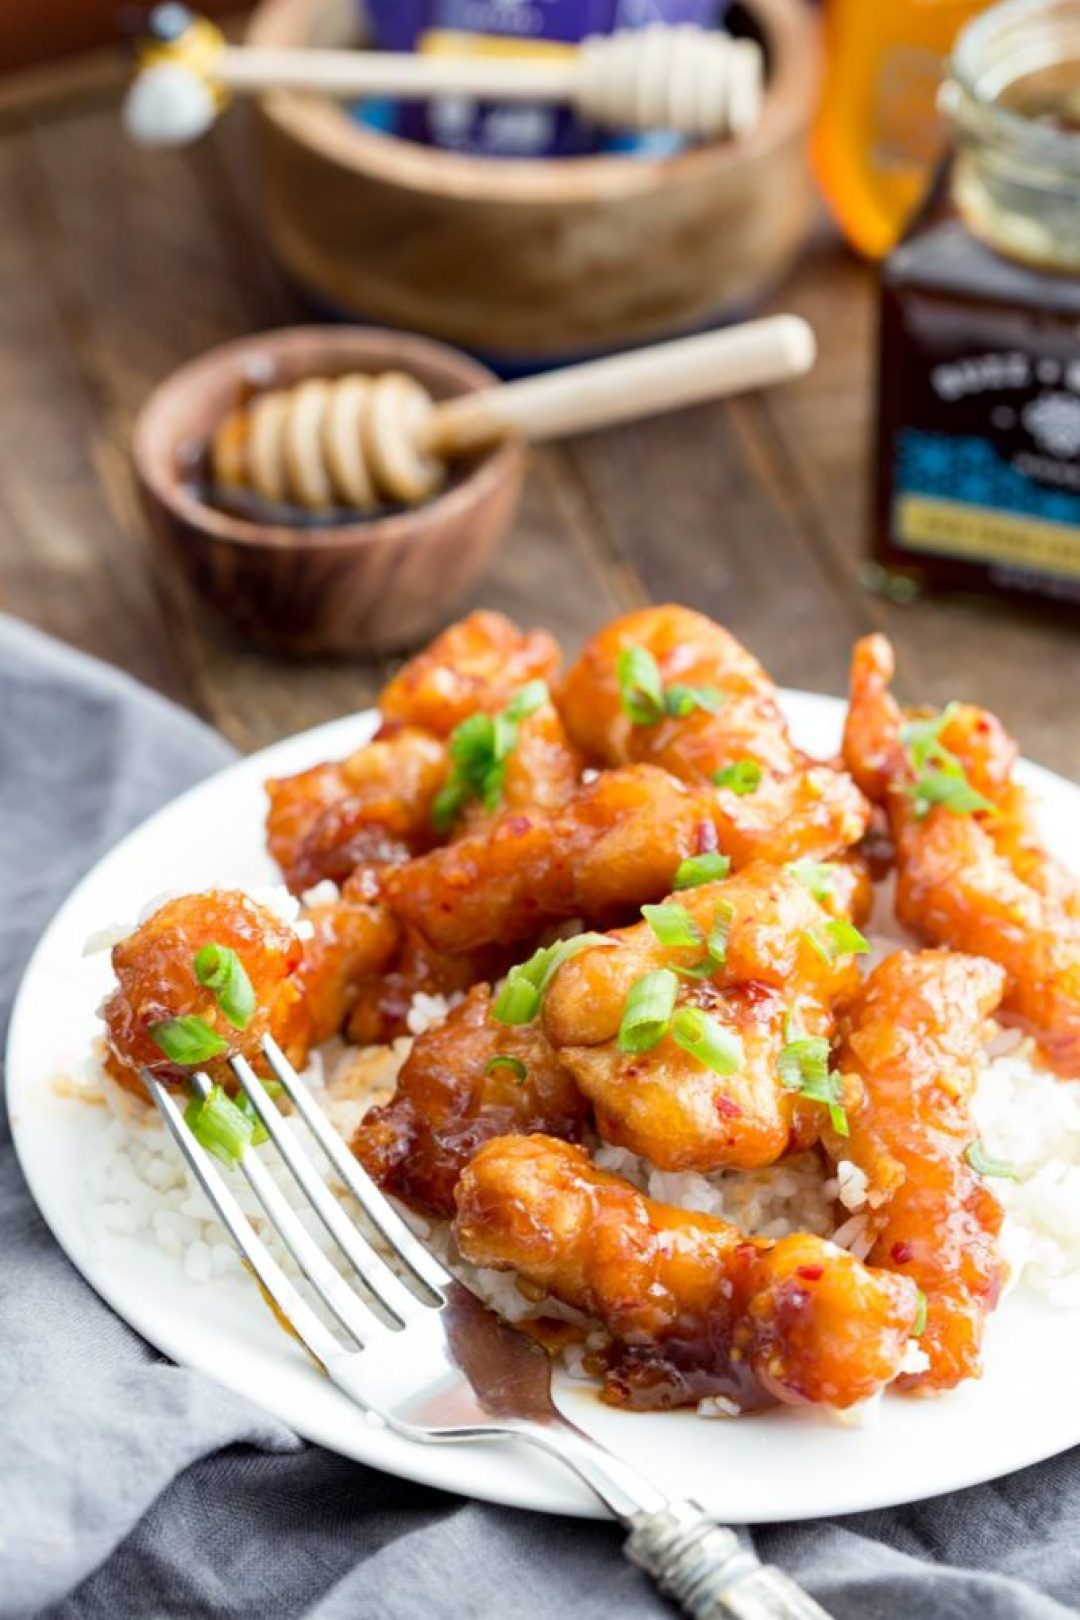 Sticky honey garlic chicken is the perfect meal solution